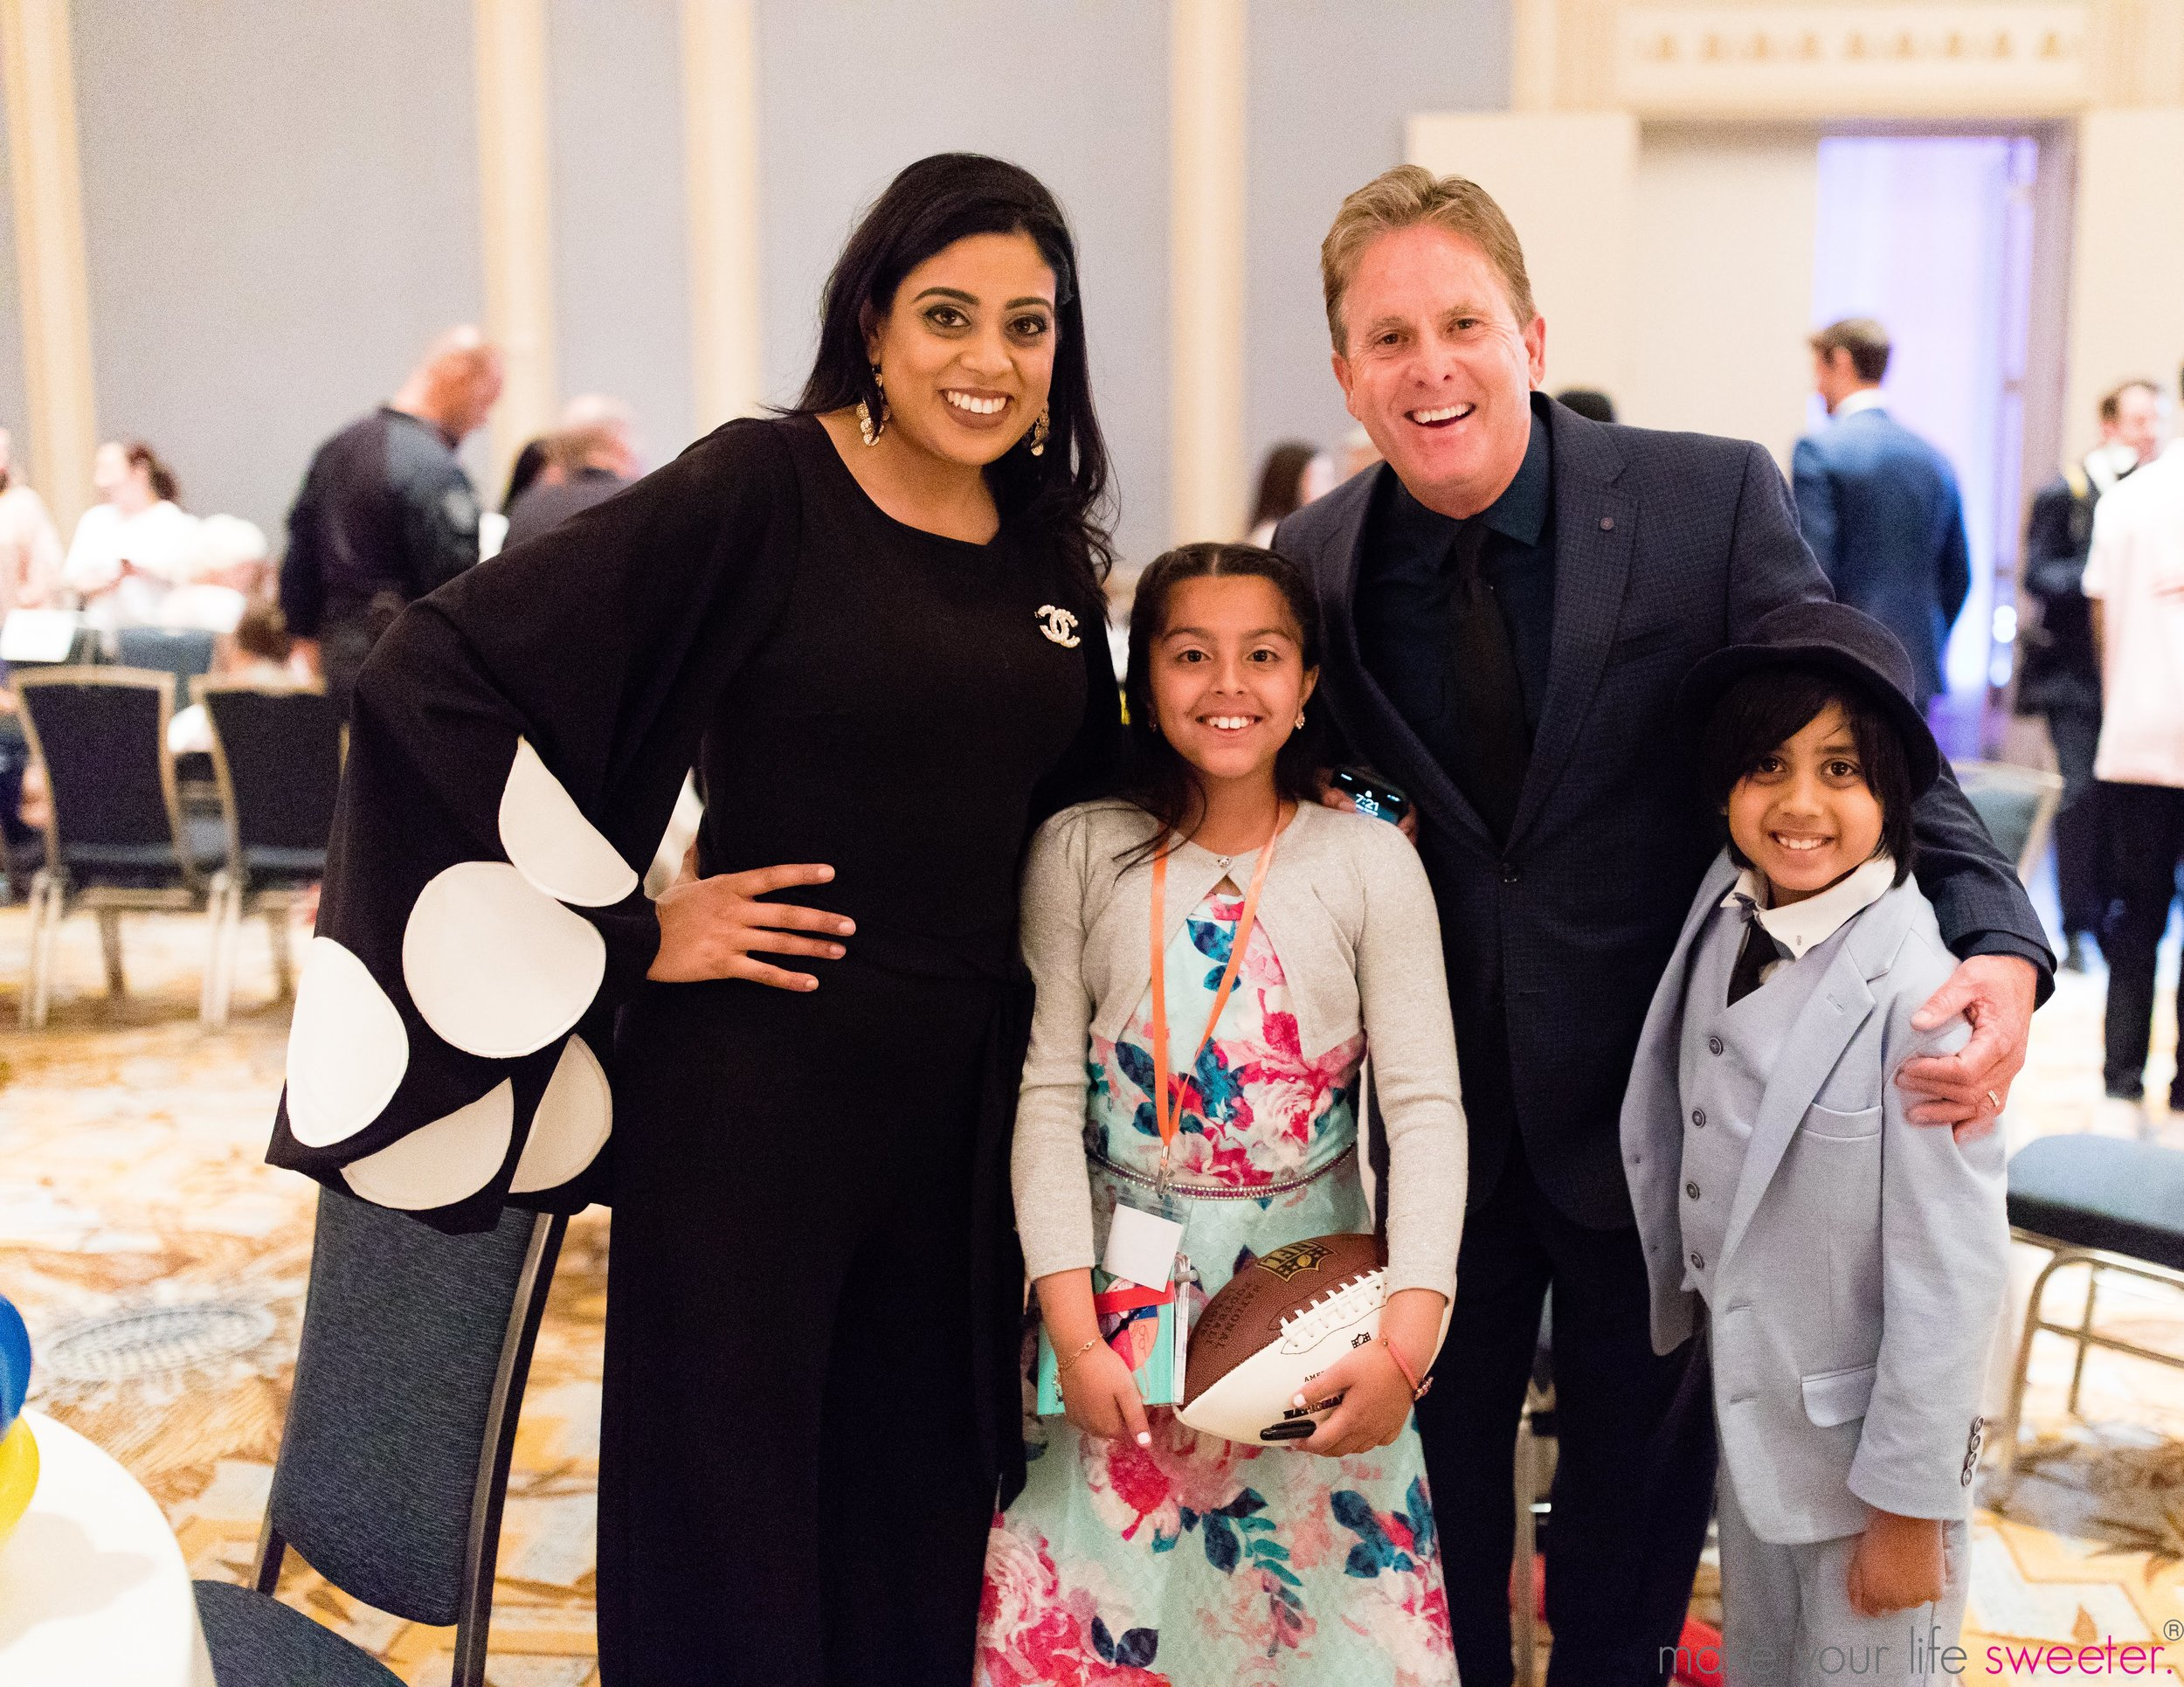 Make Your Life Sweeter Events - Children's Annual Cancer Fund Gala 2019